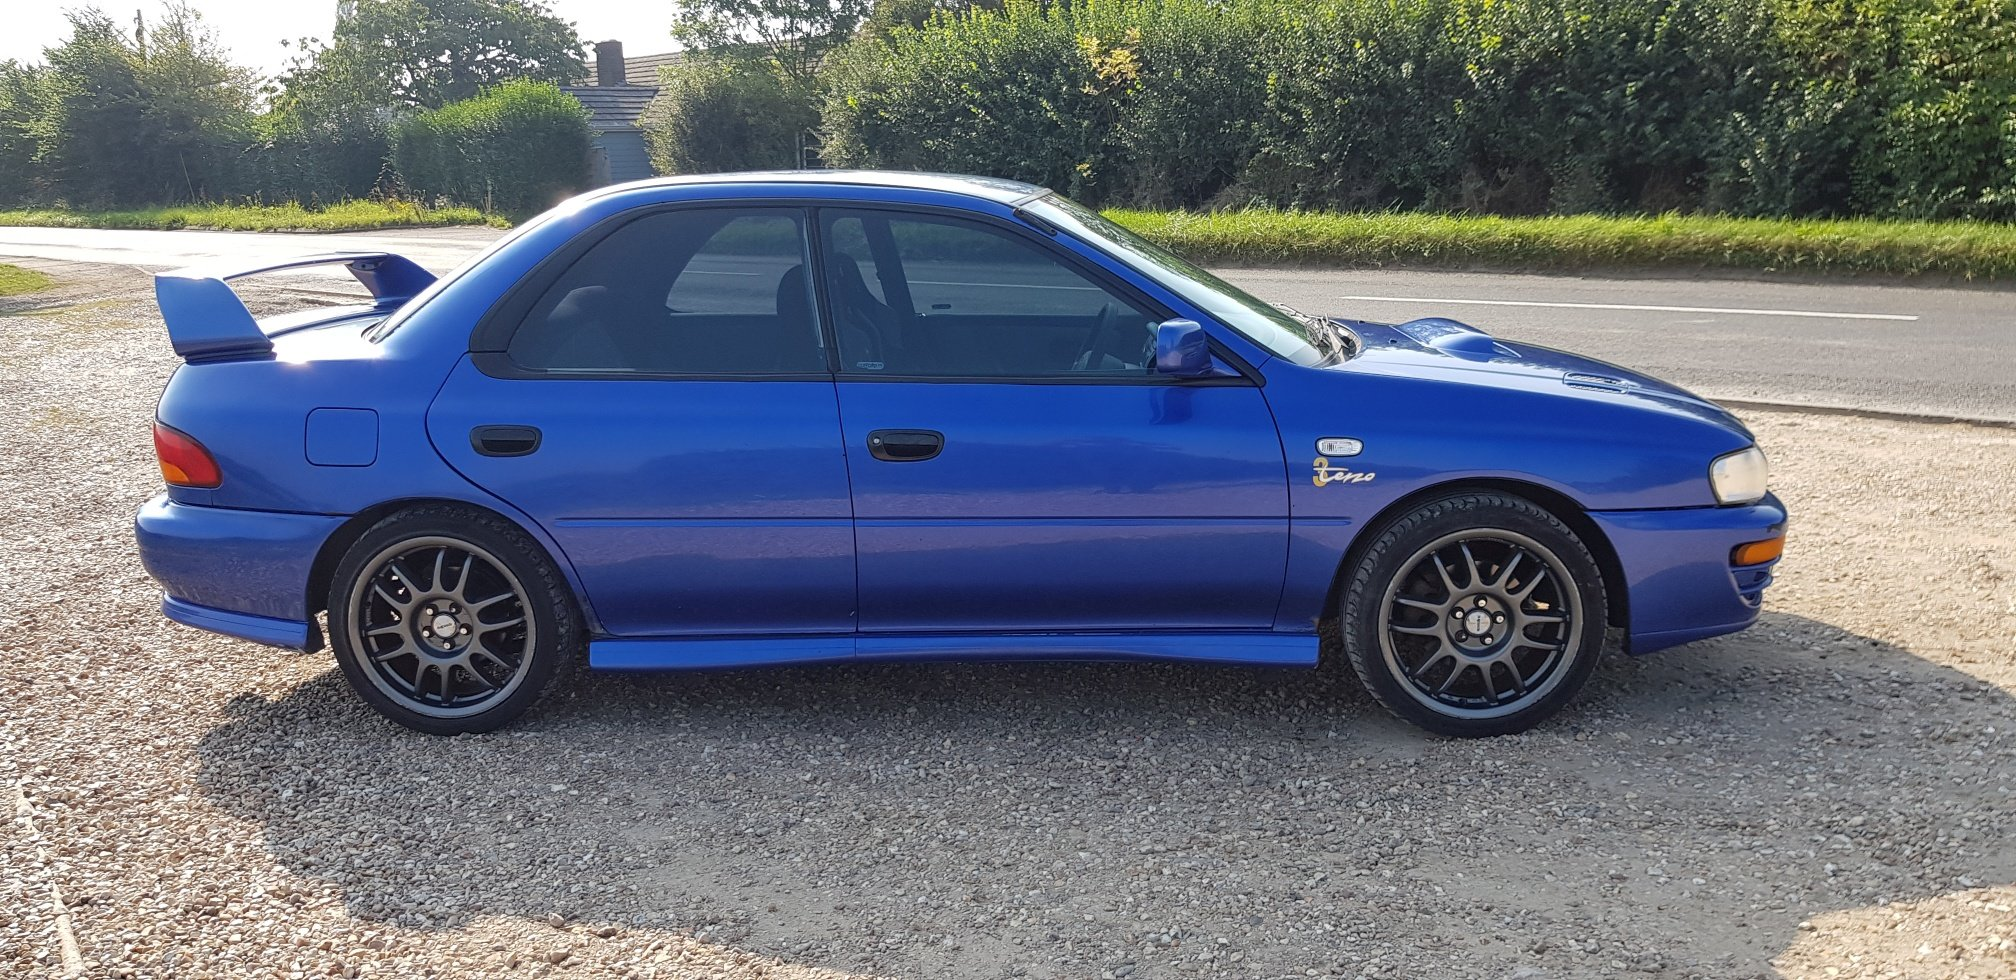 1999 very  rare  terzo  turbo  fsh  low  miles  investmant  For Sale (picture 3 of 6)